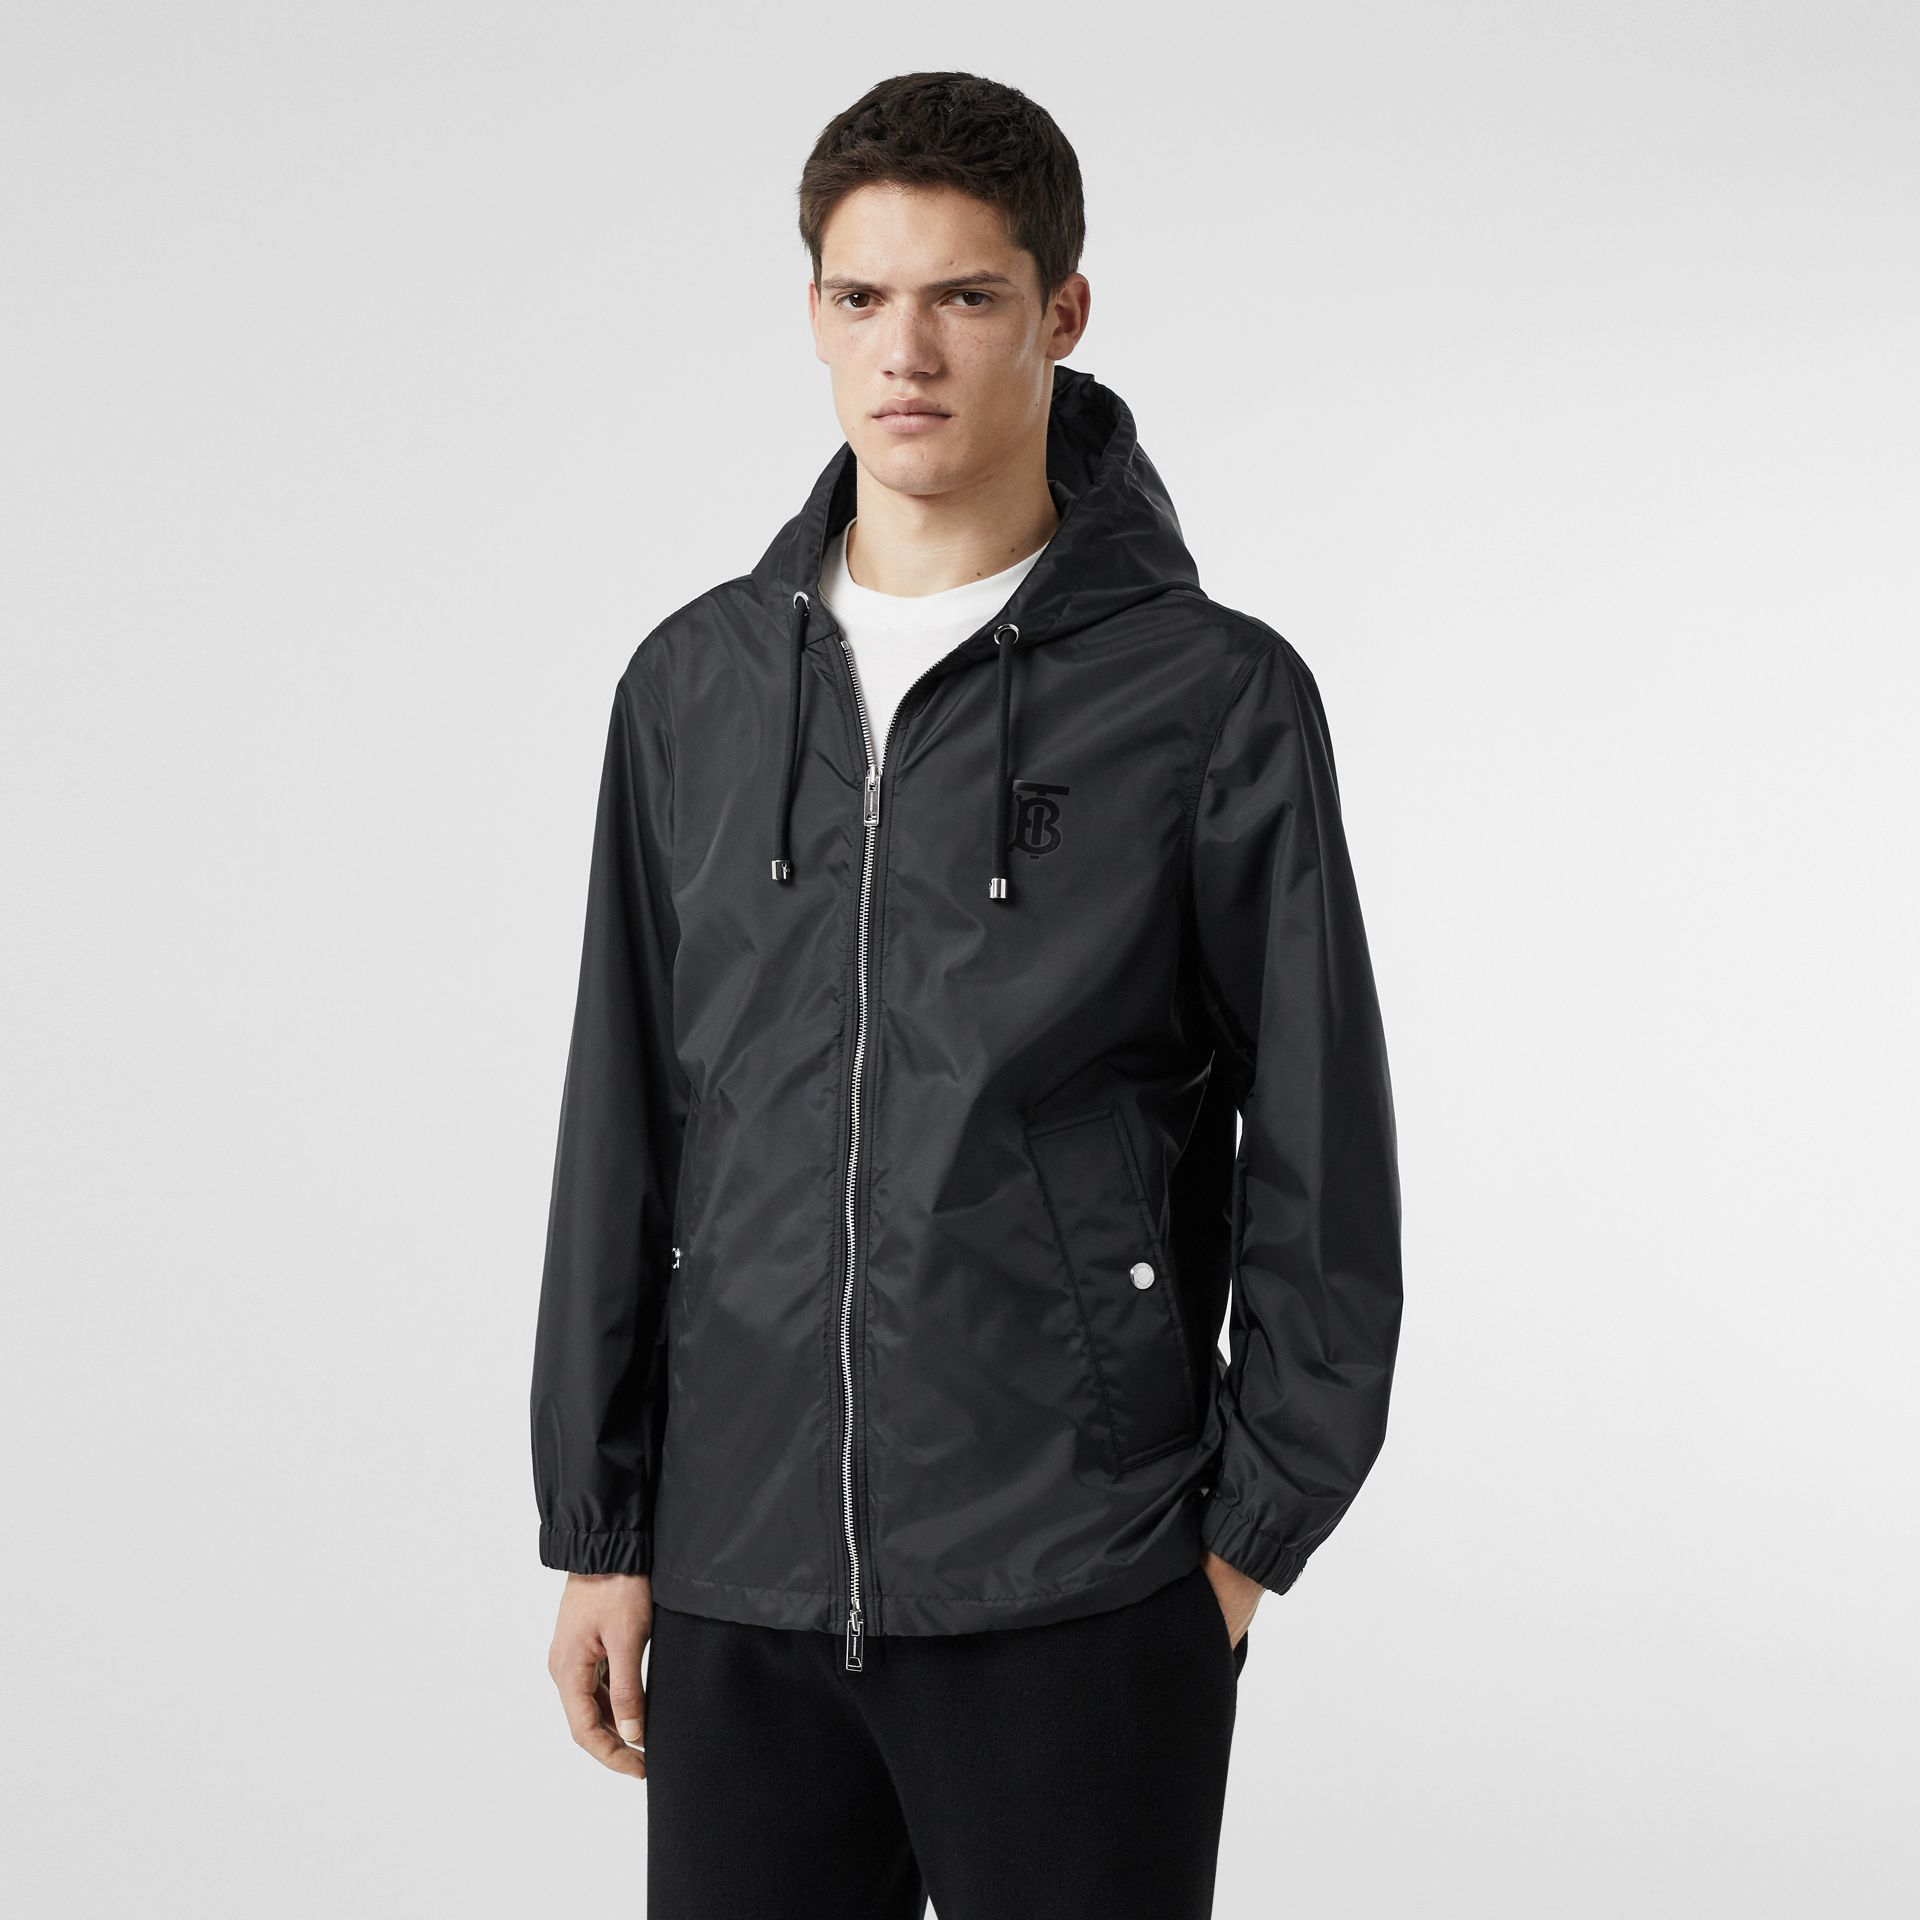 Monogram Motif Lightweight Hooded Jacket in Black - Men | Burberry Canada - gallery image 5